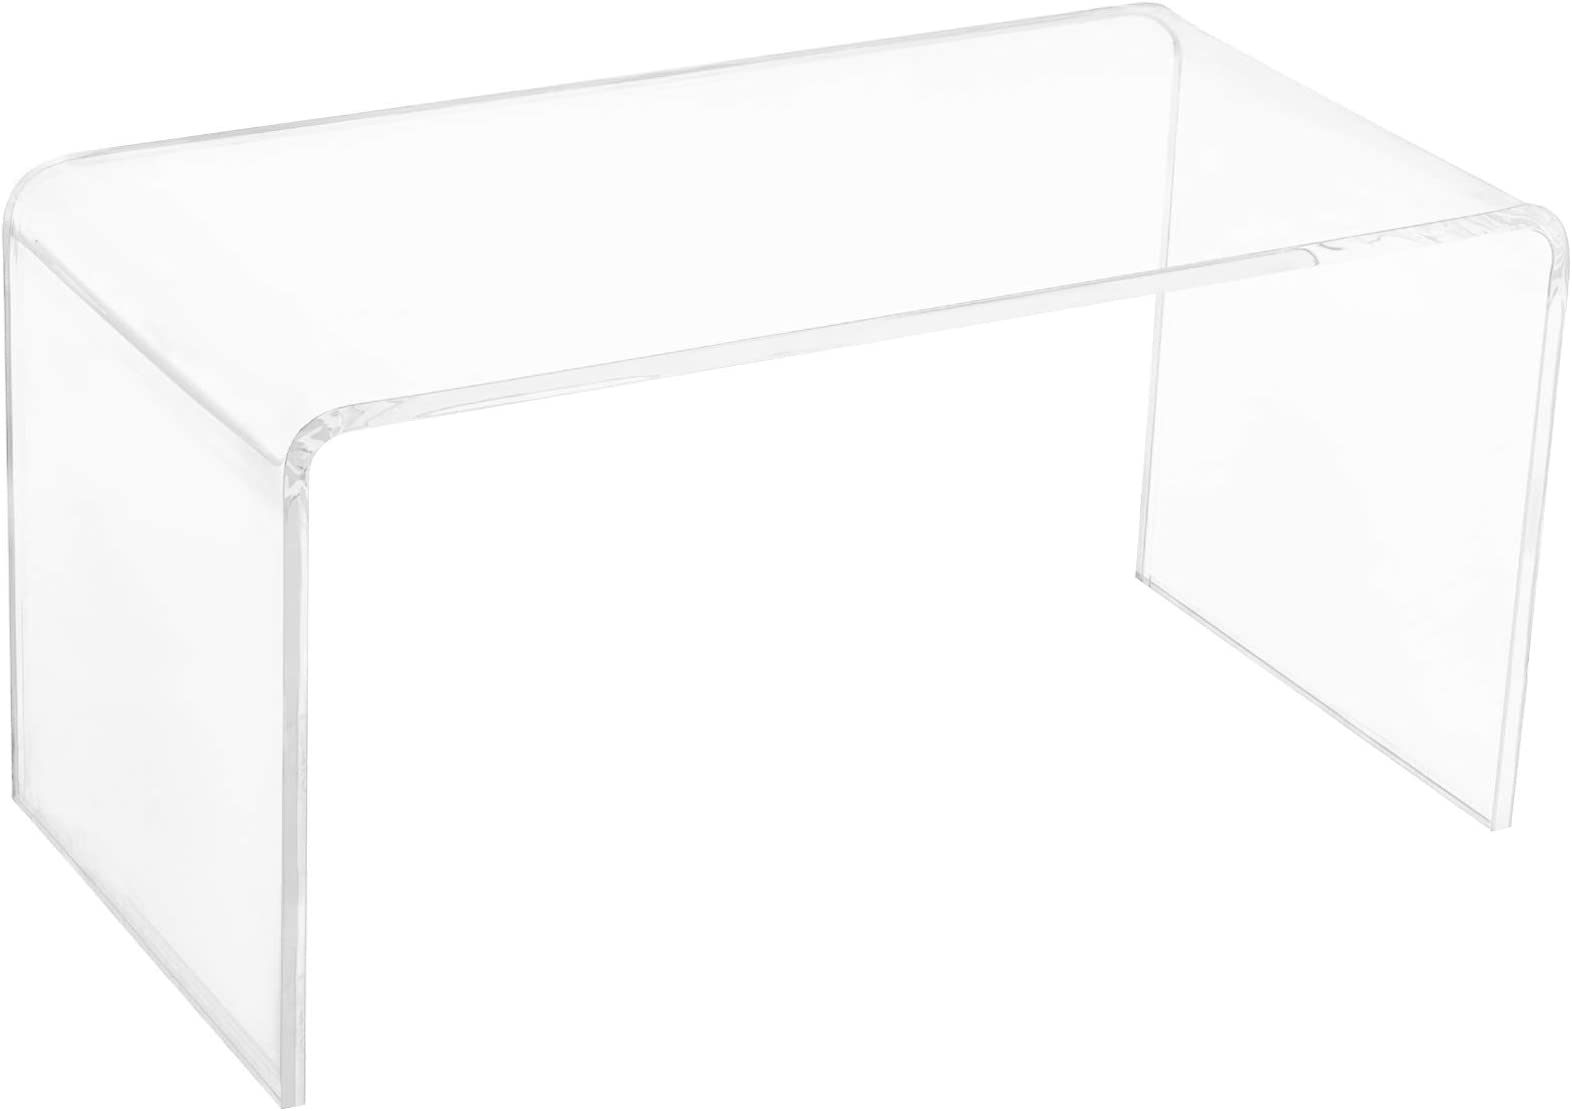 "HOMCOM 32"" Long Rectangle All Acrylic 20mm Thick Waterfall Coffee Table, Clear"